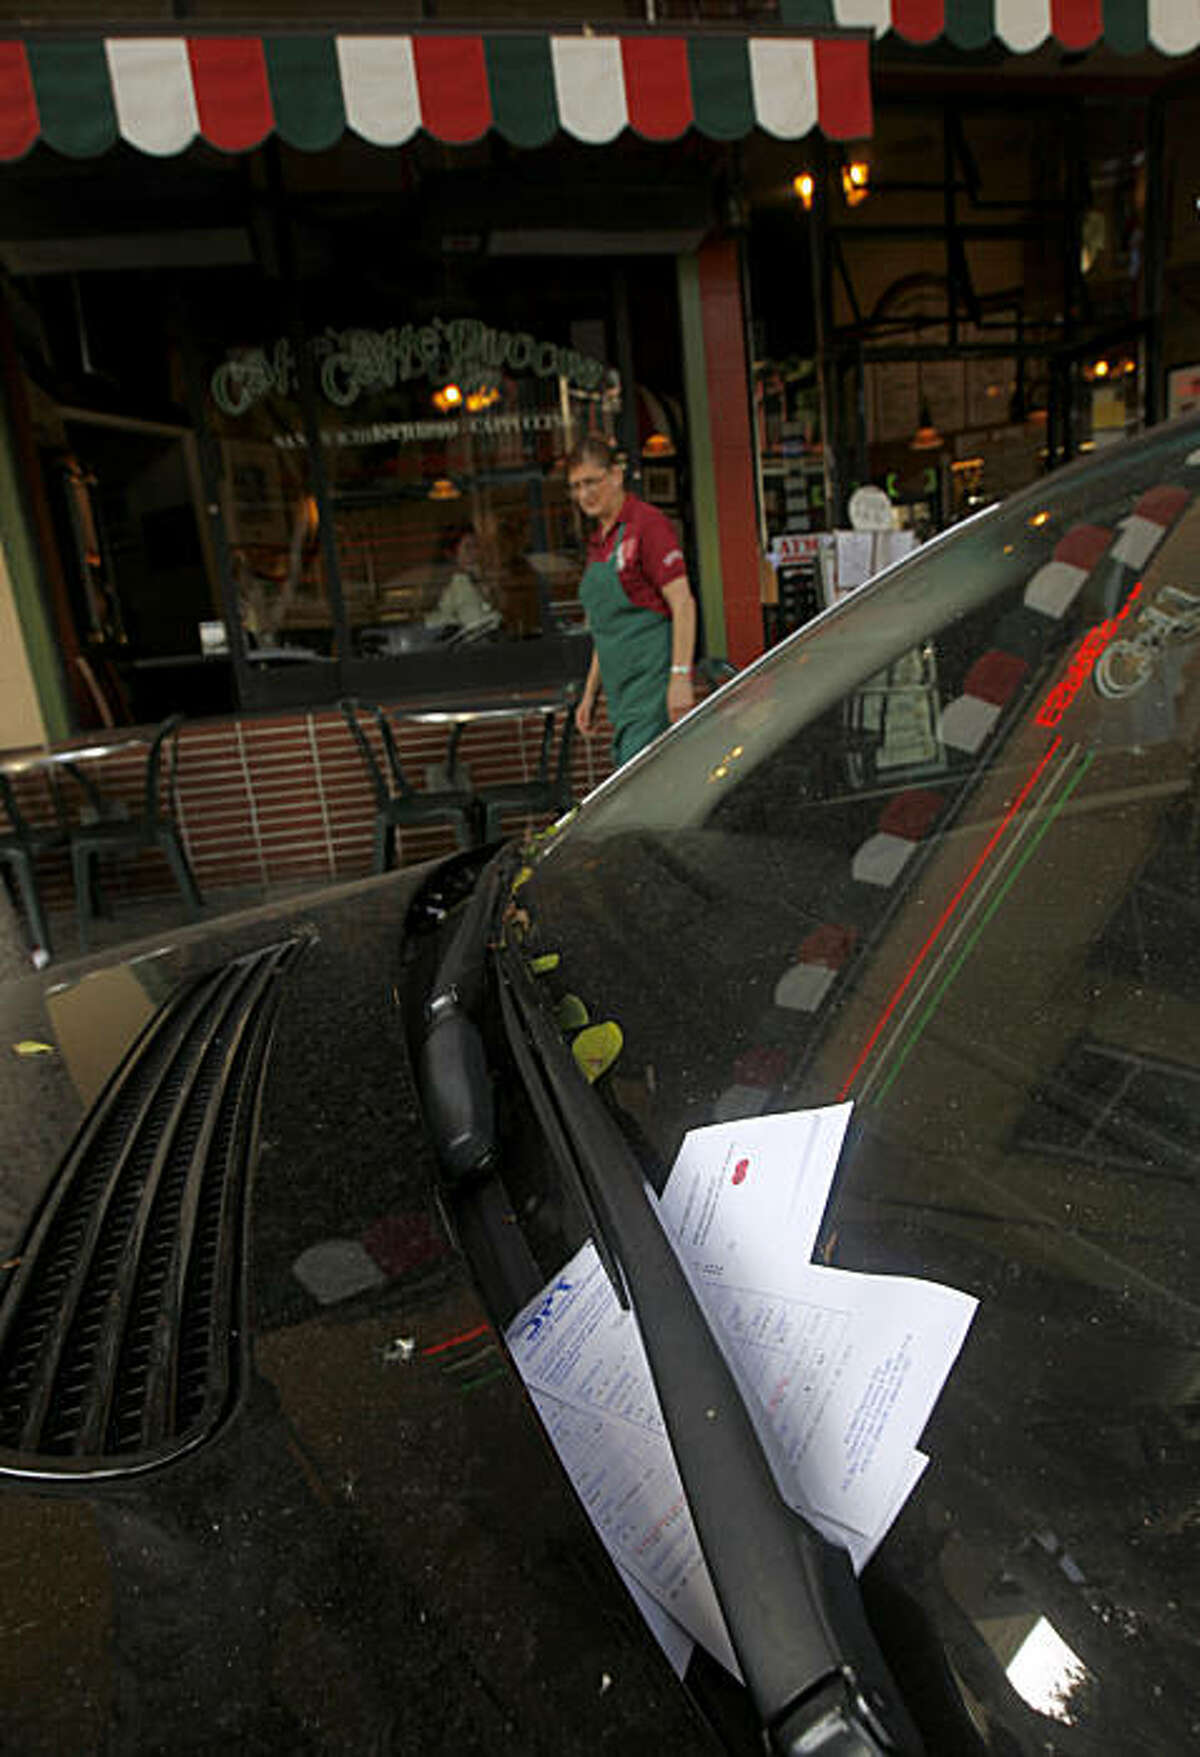 Several parking citations have been issued to a car that has been parked at an expired meter for over a day in front of Caffe Puccini on Columbus Avenue in San Francisco, Calif., on Wednesday, Oct. 6, 2010.